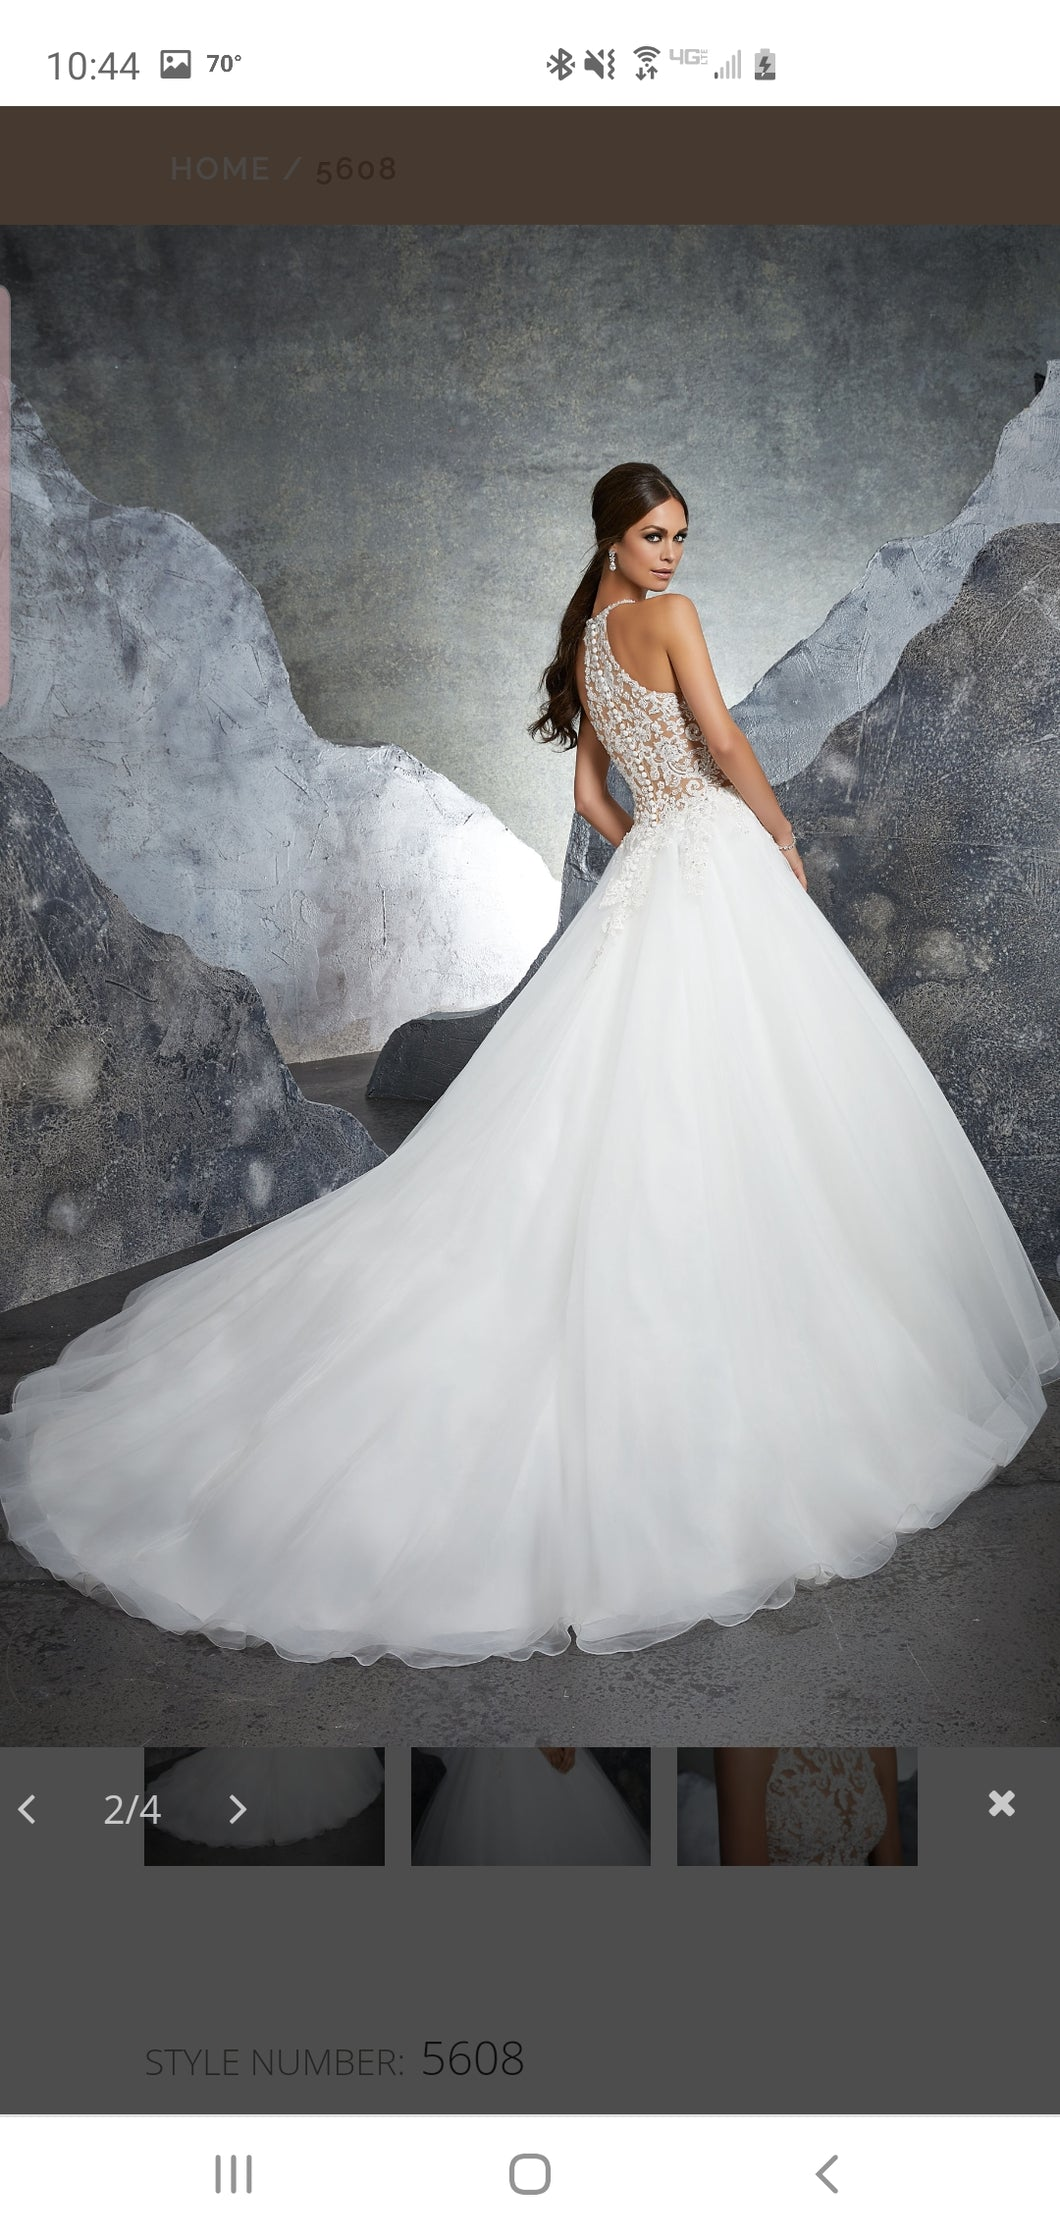 Mori Lee 'Brand New' size 12 new wedding dress back view on model